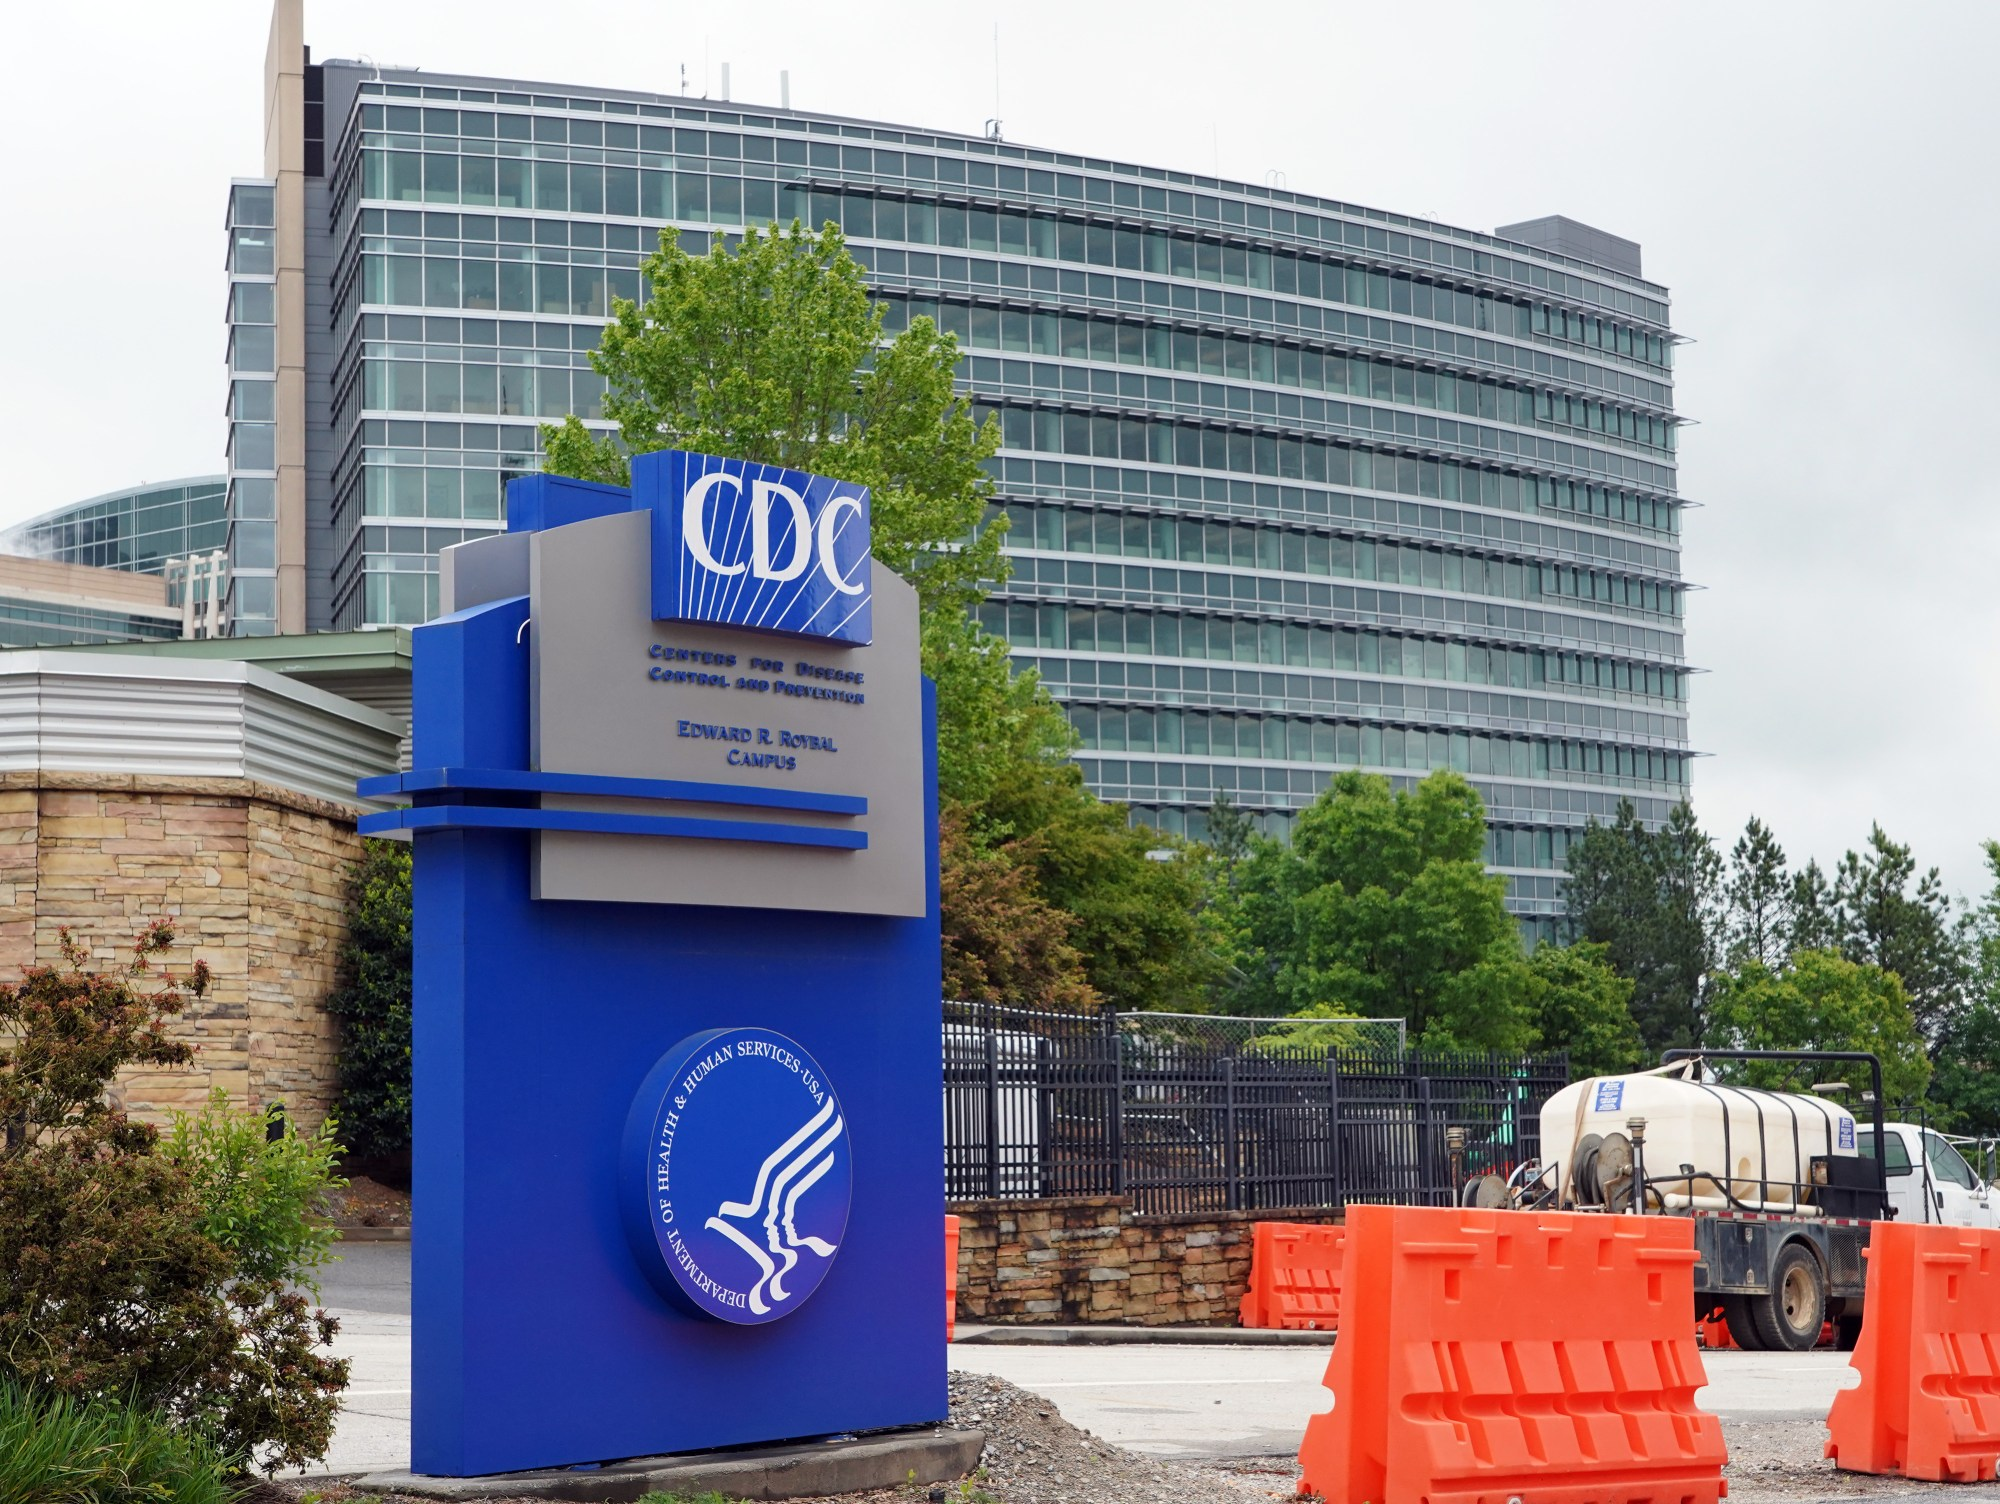 A general view of the Centers for Disease Control and Prevention Edward R. Roybal campus in Atlanta, Georgia on April 23, 2020. (TAMI CHAPPELL/AFP via Getty Images)